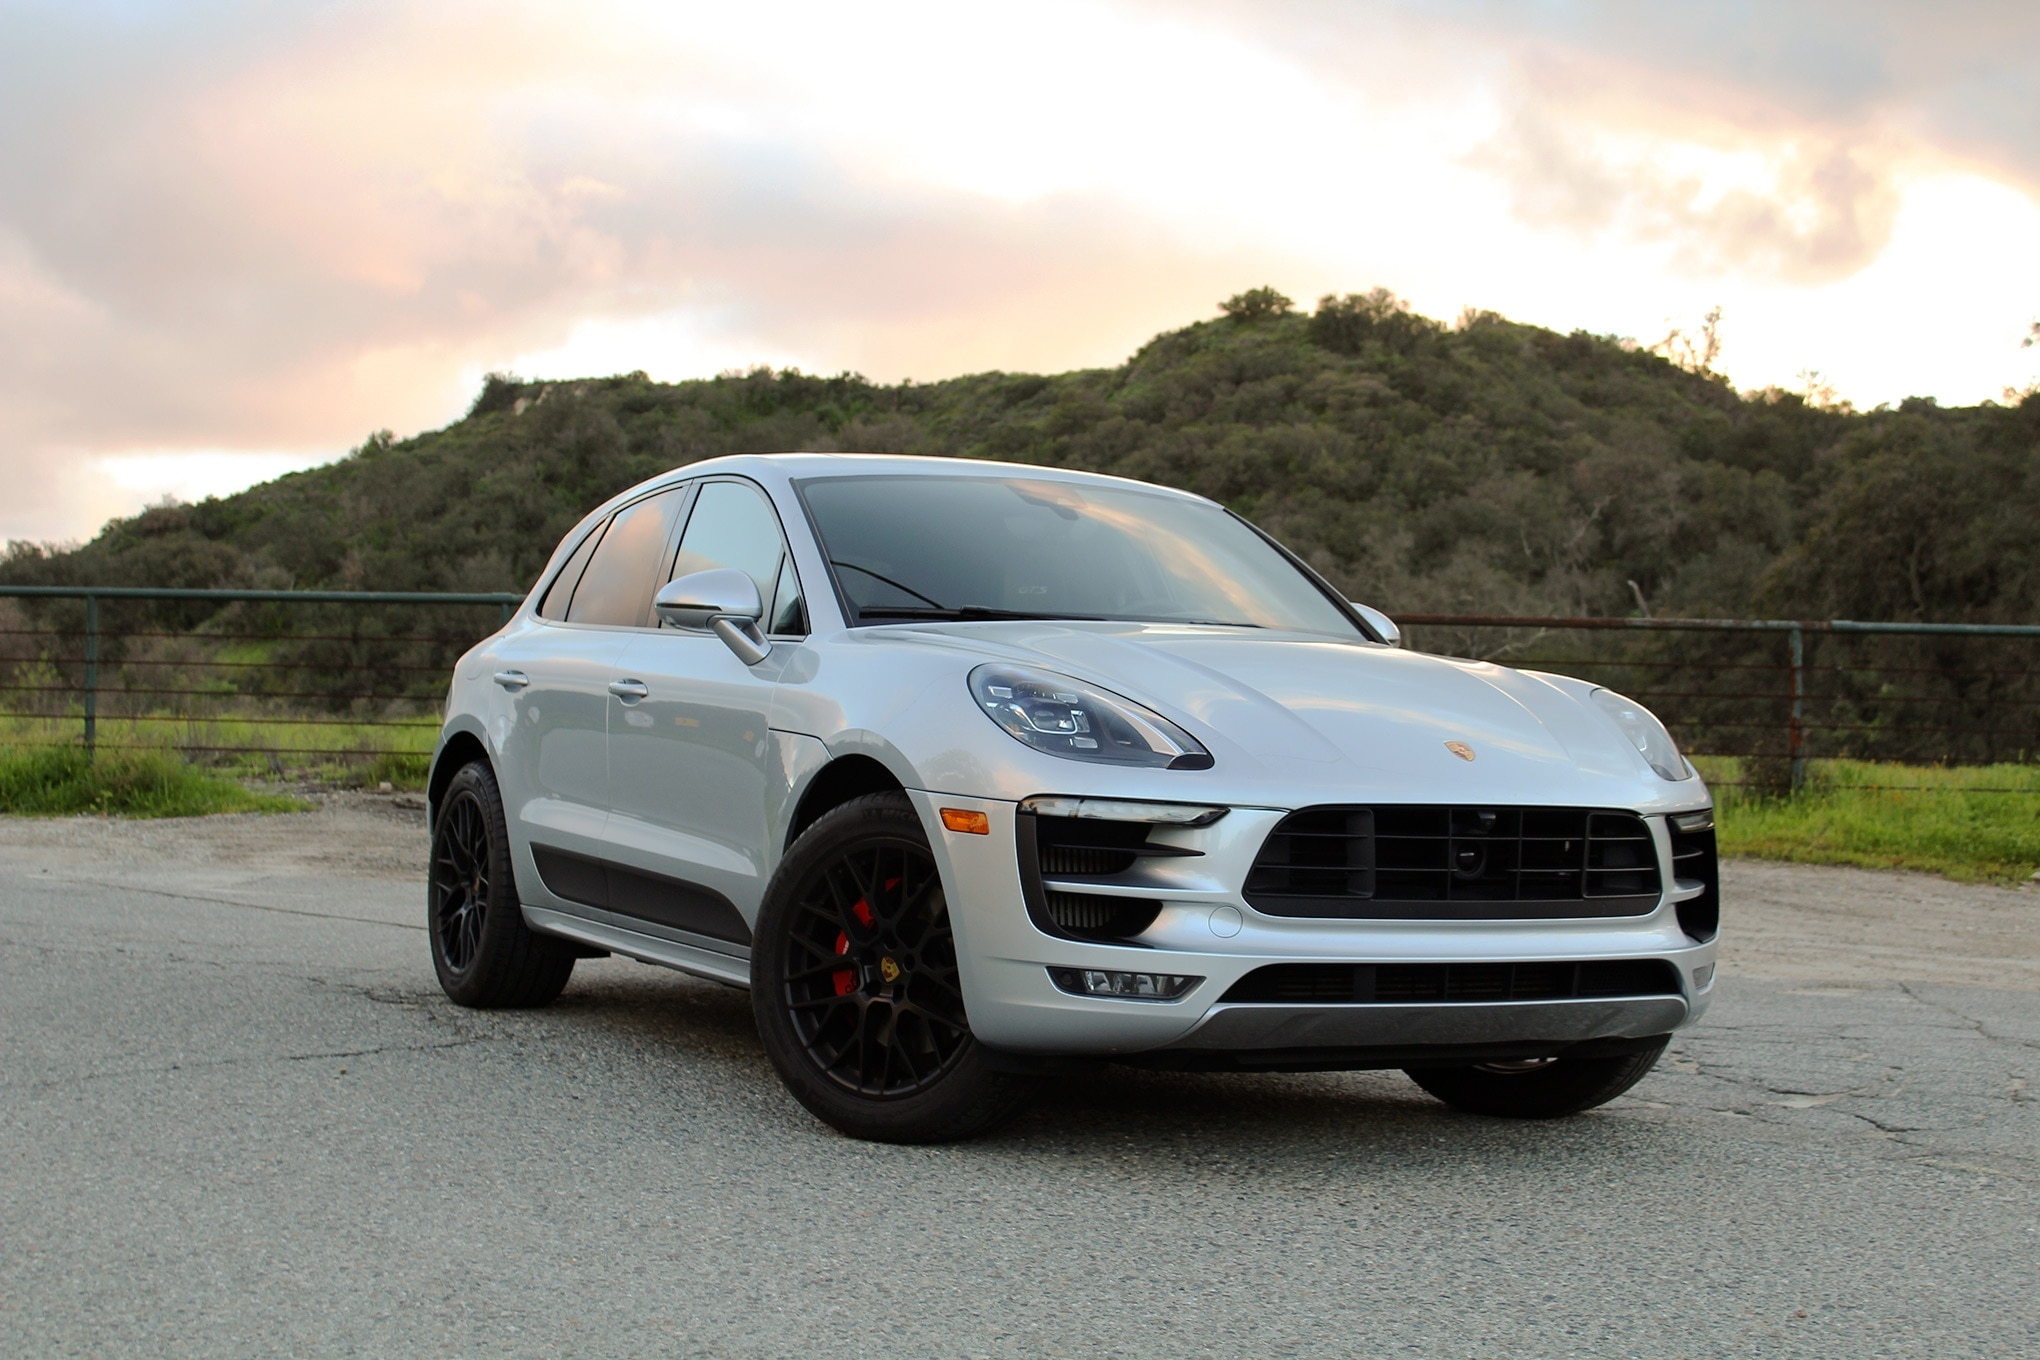 2017 Porsche Macan GTS Front Three Quarter 01